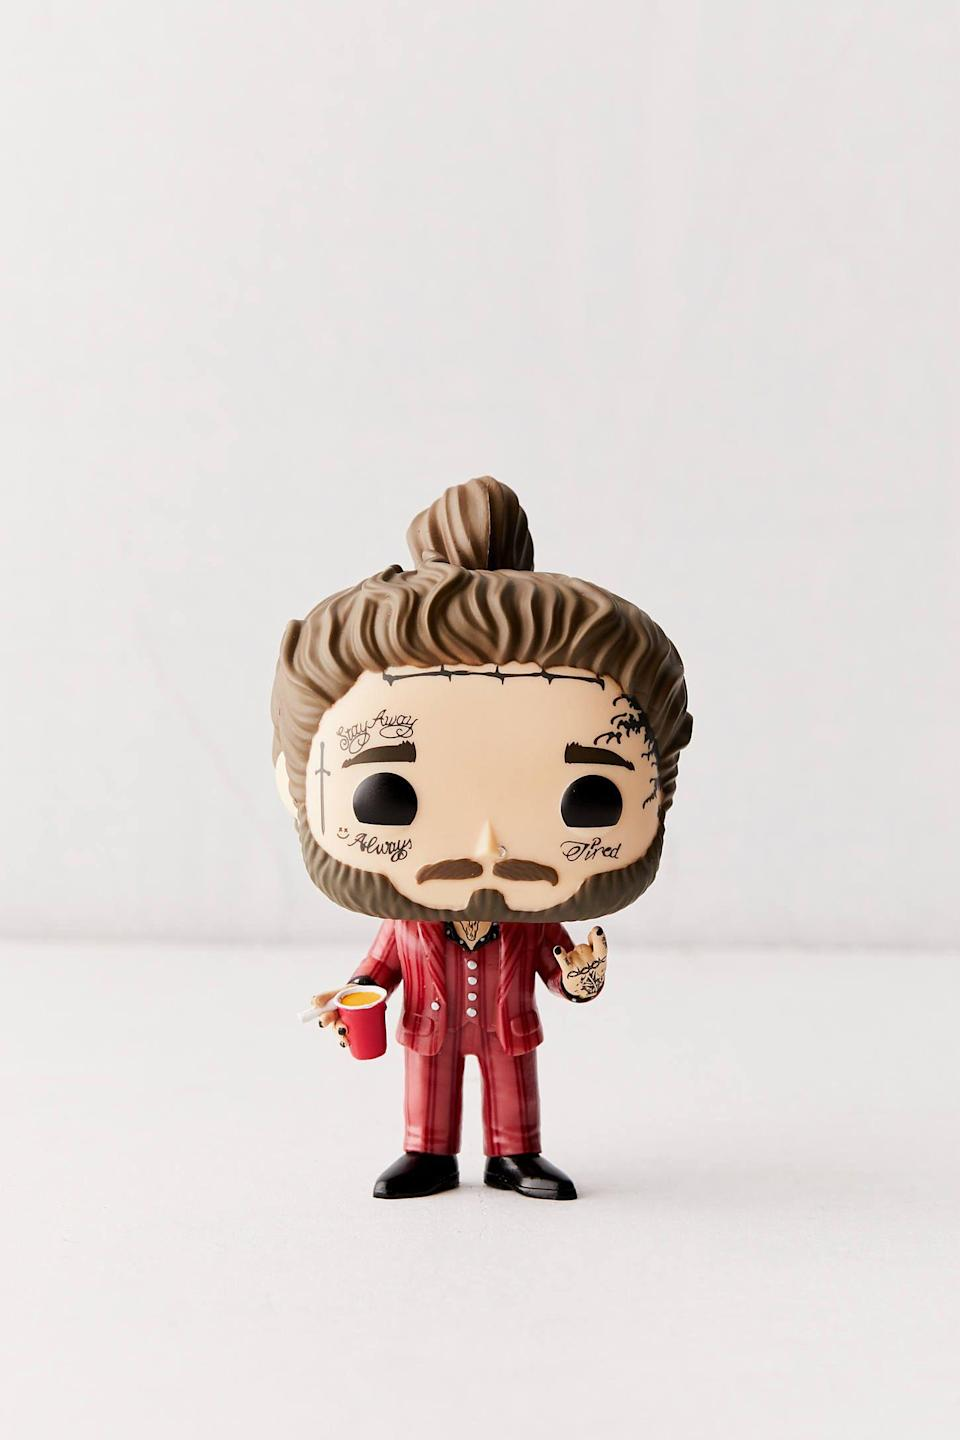 """<p><strong>Funko</strong></p><p>urbanoutfitters.com</p><p><strong>$12.00</strong></p><p><a href=""""https://go.redirectingat.com?id=74968X1596630&url=https%3A%2F%2Fwww.urbanoutfitters.com%2Fshop%2Ffunko-pop-post-malone-figure&sref=https%3A%2F%2Fwww.seventeen.com%2Flife%2Fg23515577%2Fcool-gifts-for-teen-boys%2F"""" rel=""""nofollow noopener"""" target=""""_blank"""" data-ylk=""""slk:Shop Now"""" class=""""link rapid-noclick-resp"""">Shop Now</a></p><p>Post Malone tickets are expensive! This tiny replica is the next best thing (kind of). </p>"""